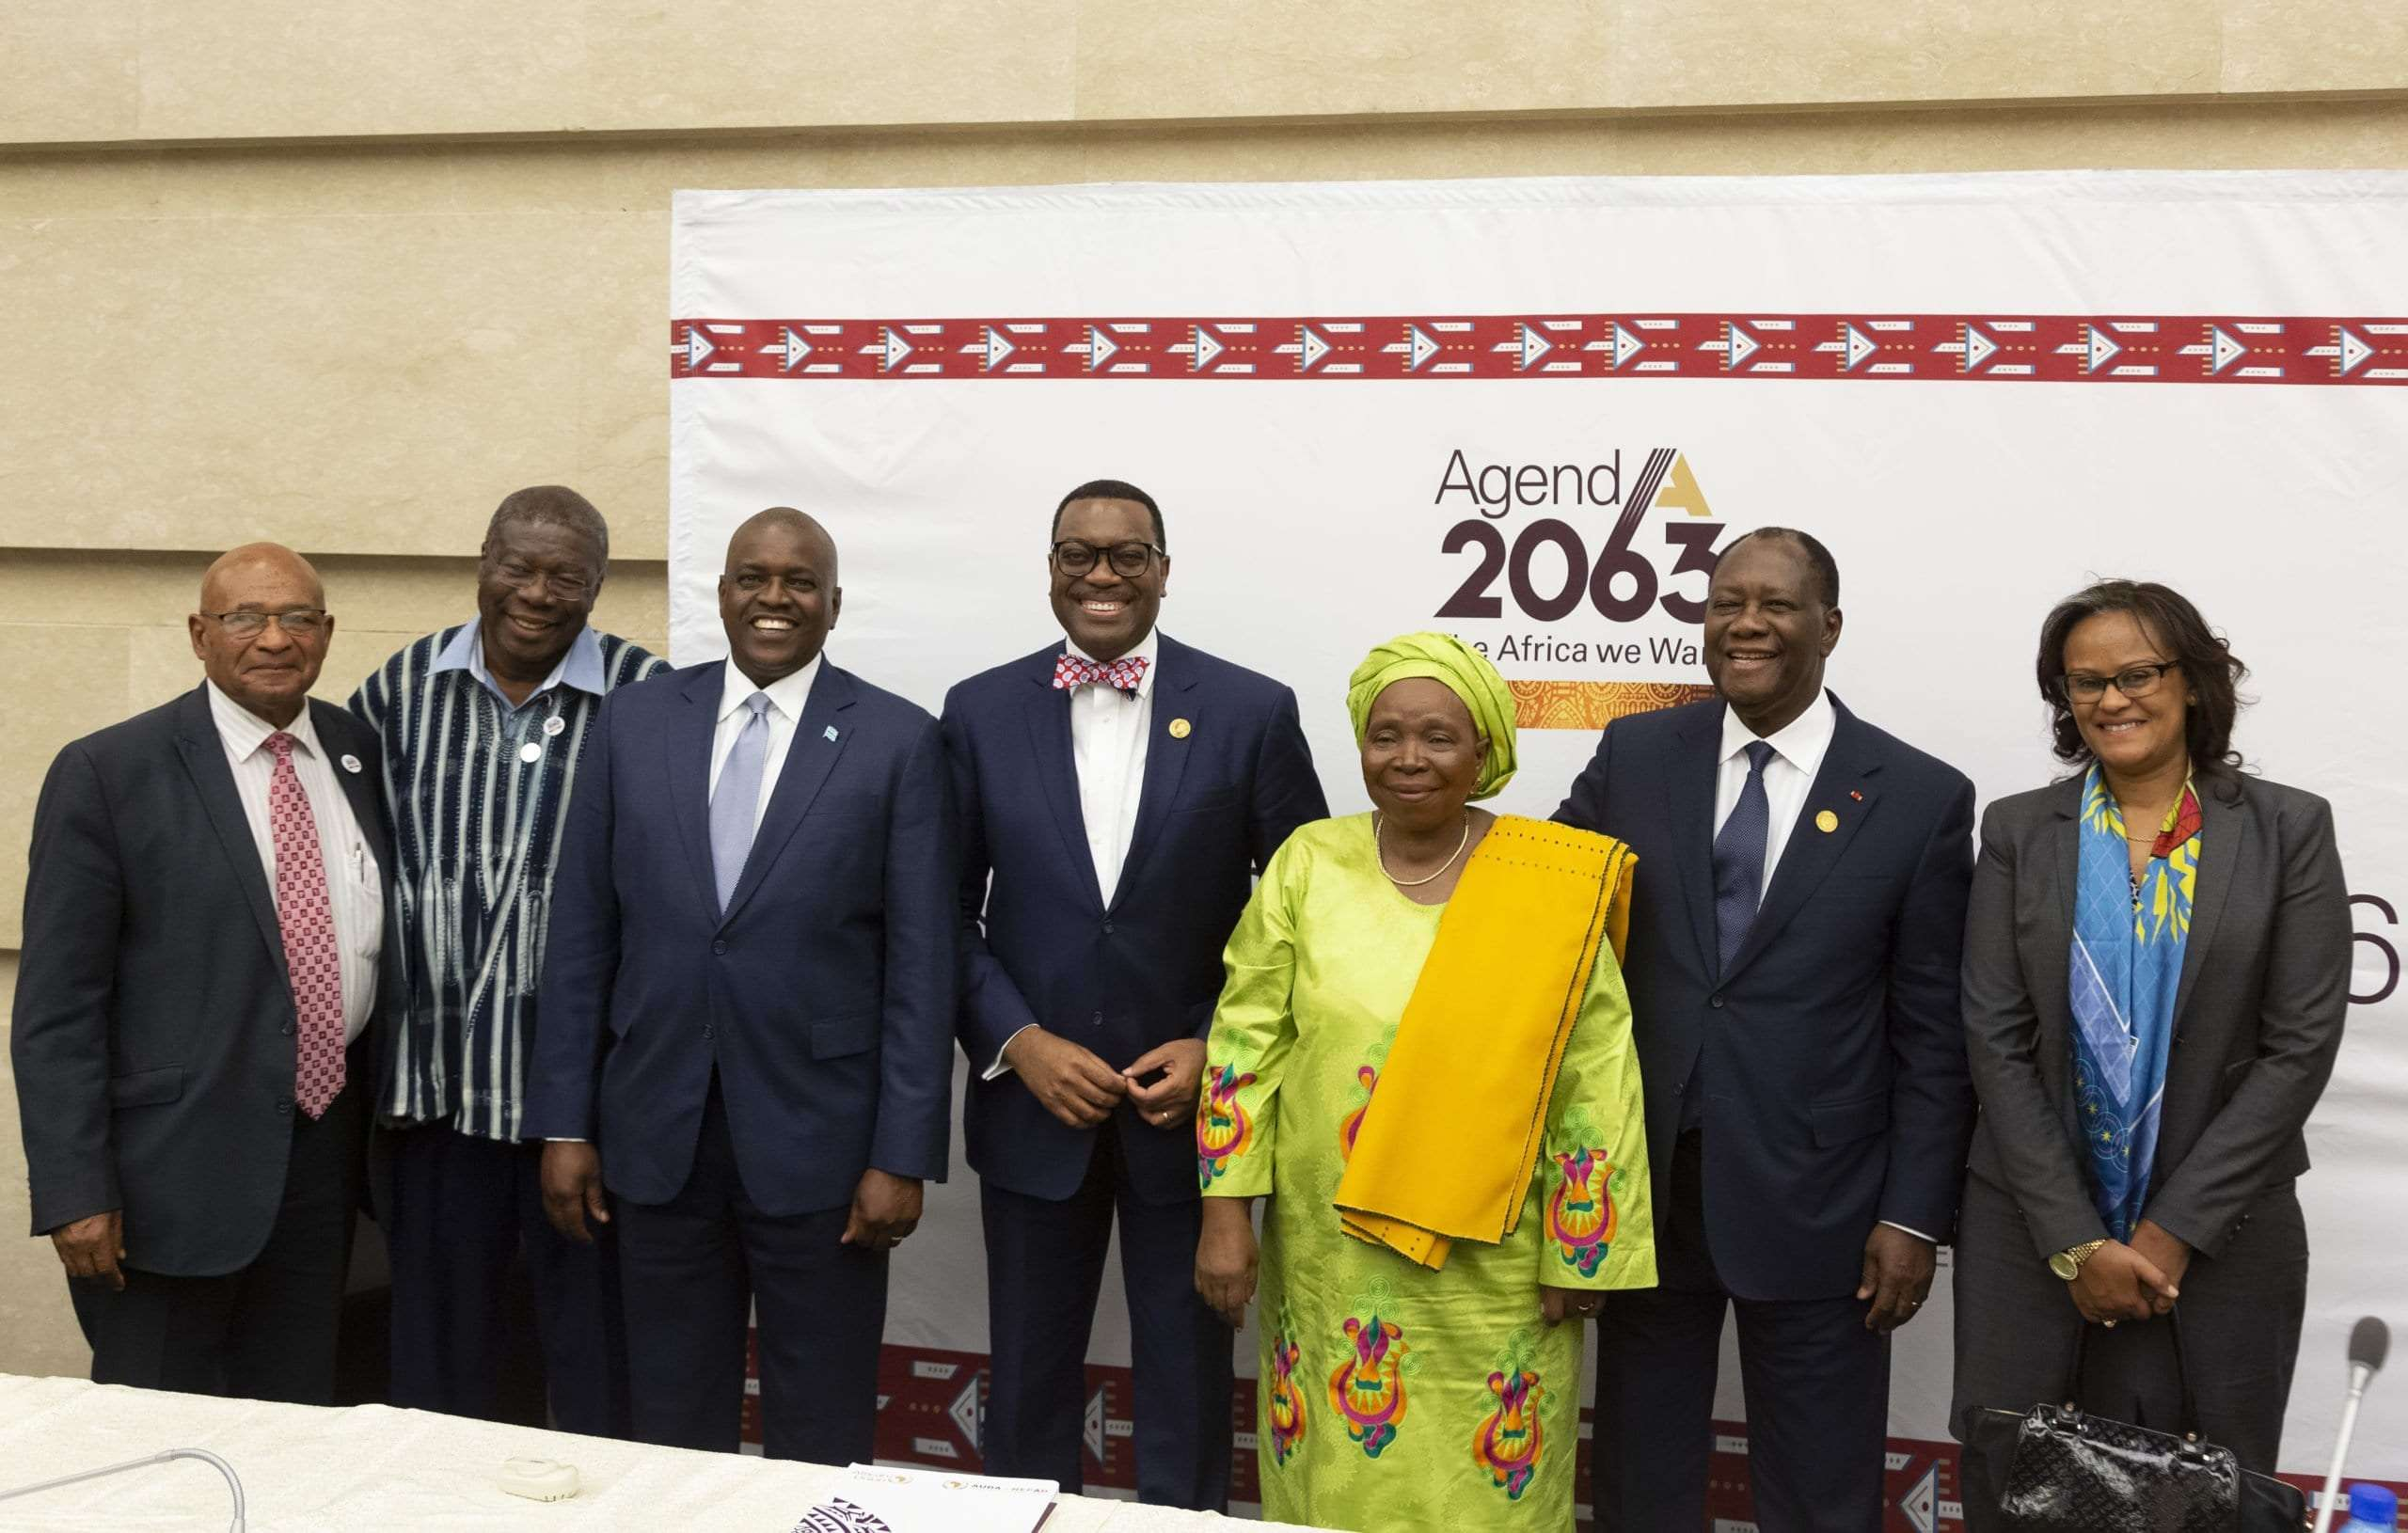 African Union (AU) Summit: First continental report on implementation of Agenda 2063 unveiled (Source: African Development Bank Group (AfDB)